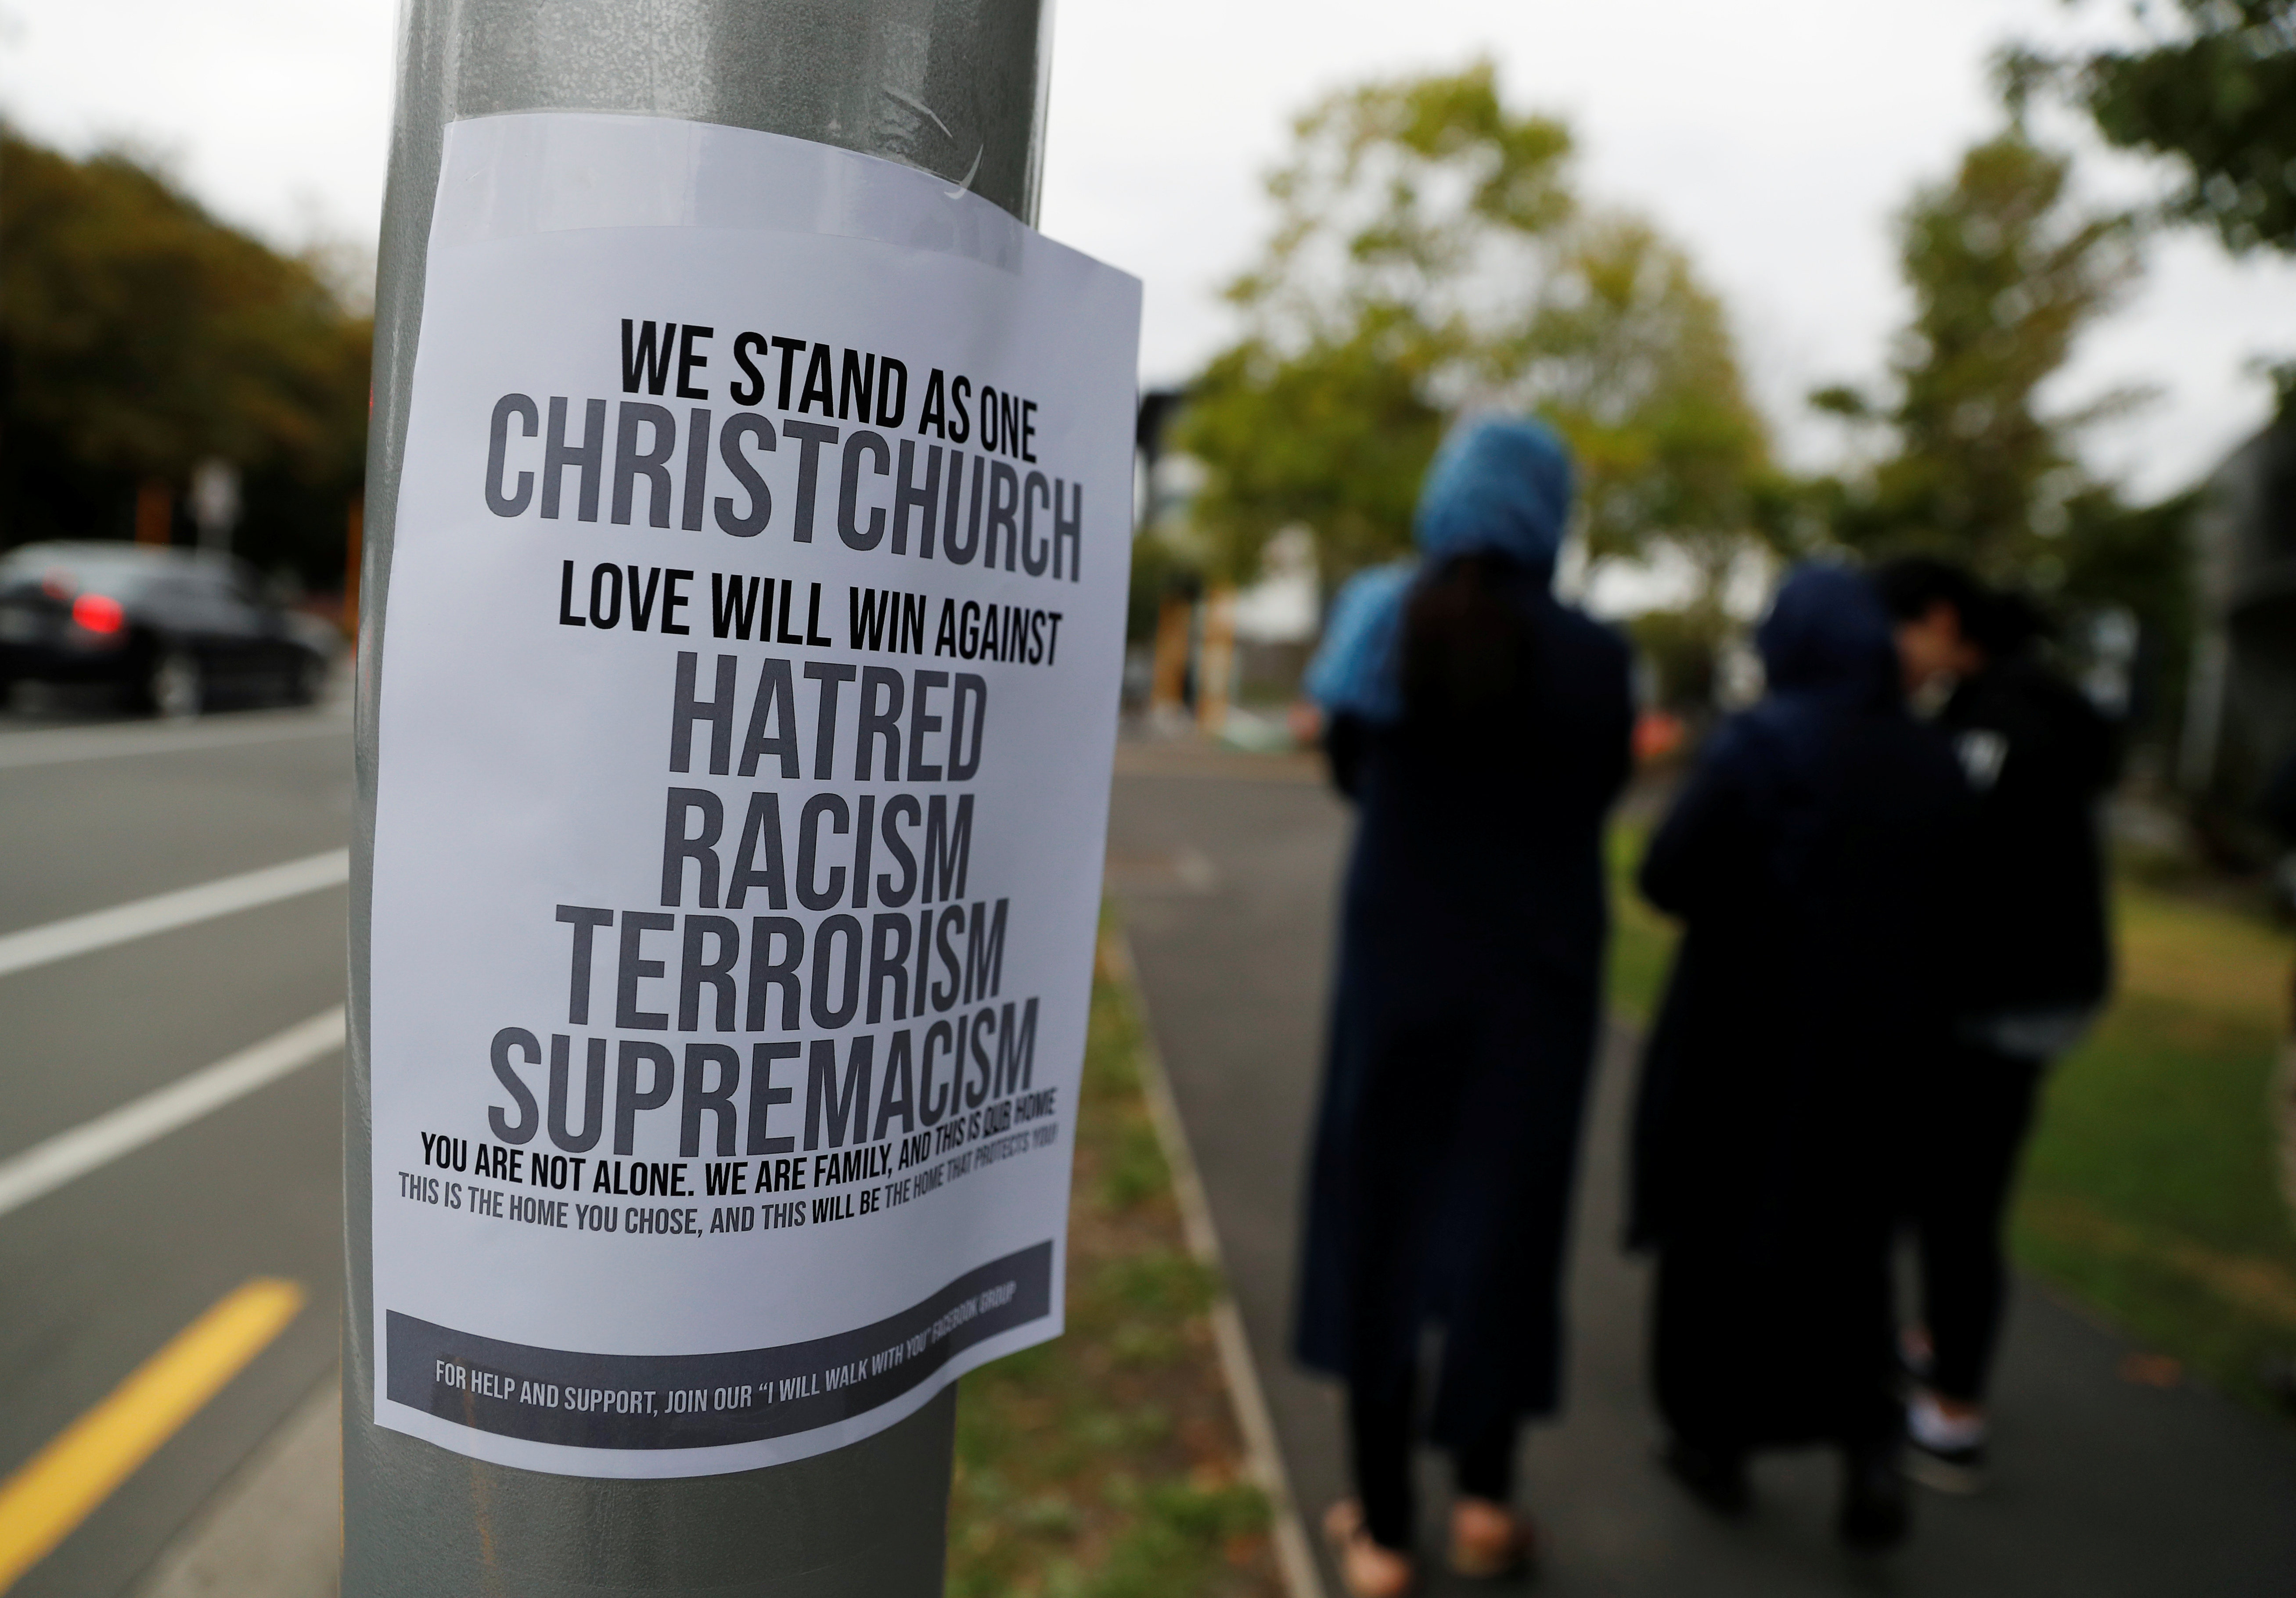 The Christchurch Attacks: Livestream Terror in the Viral